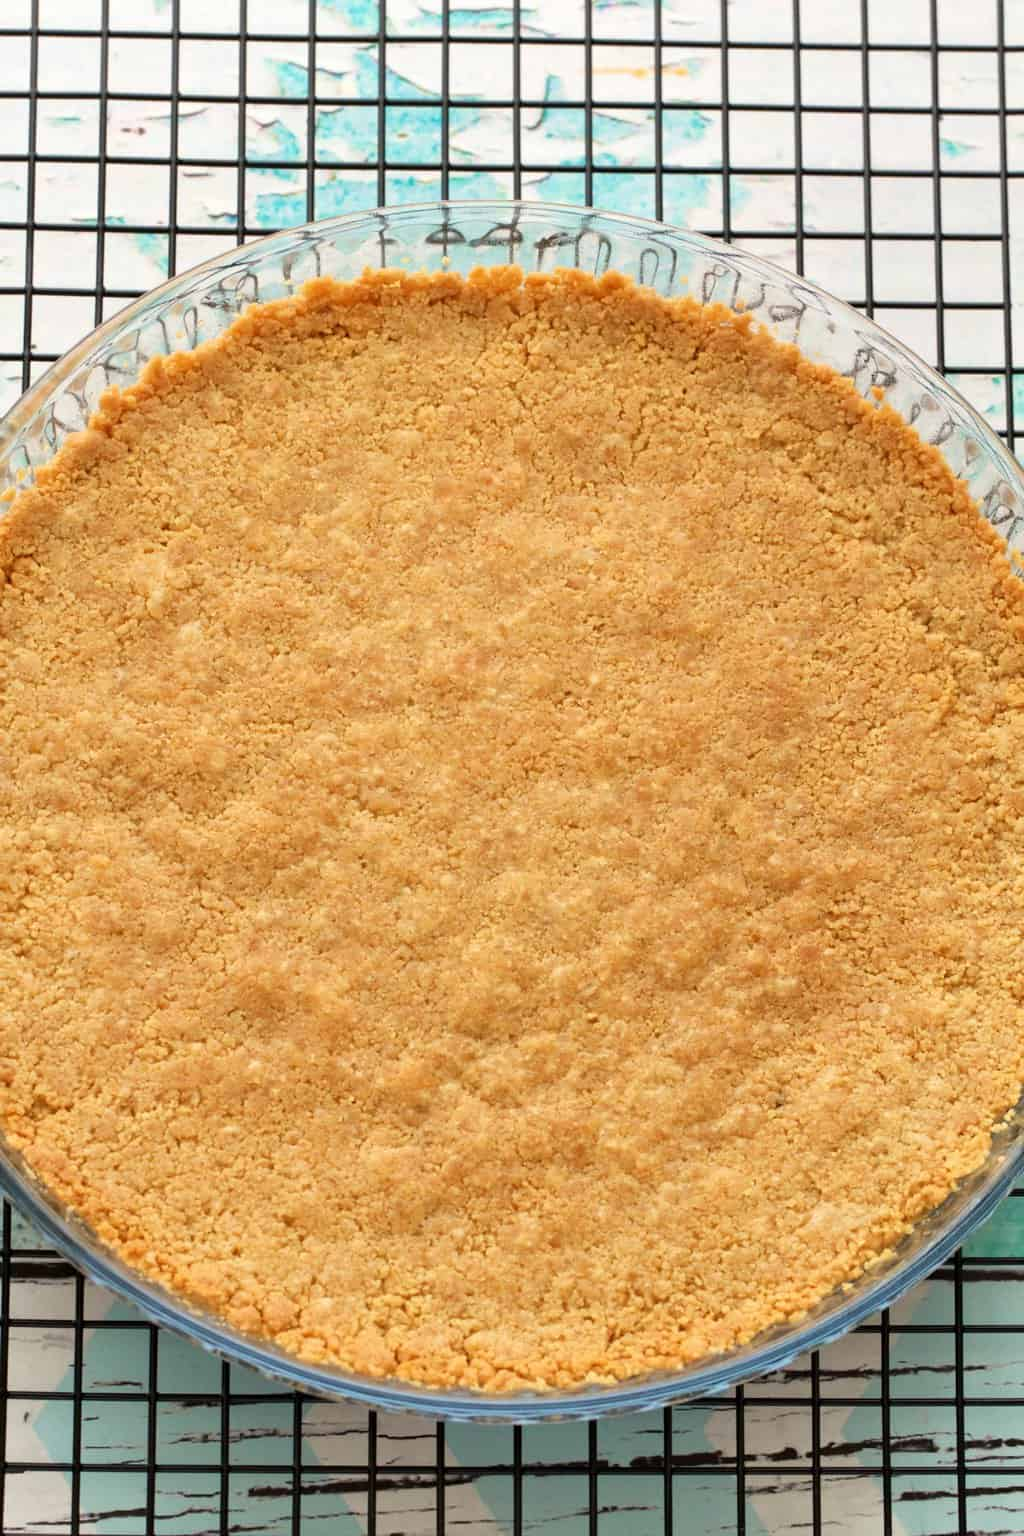 Golden oreo cookie crust for a vegan banana cream pie! #vegan #lovingitvegan #dessert #pie